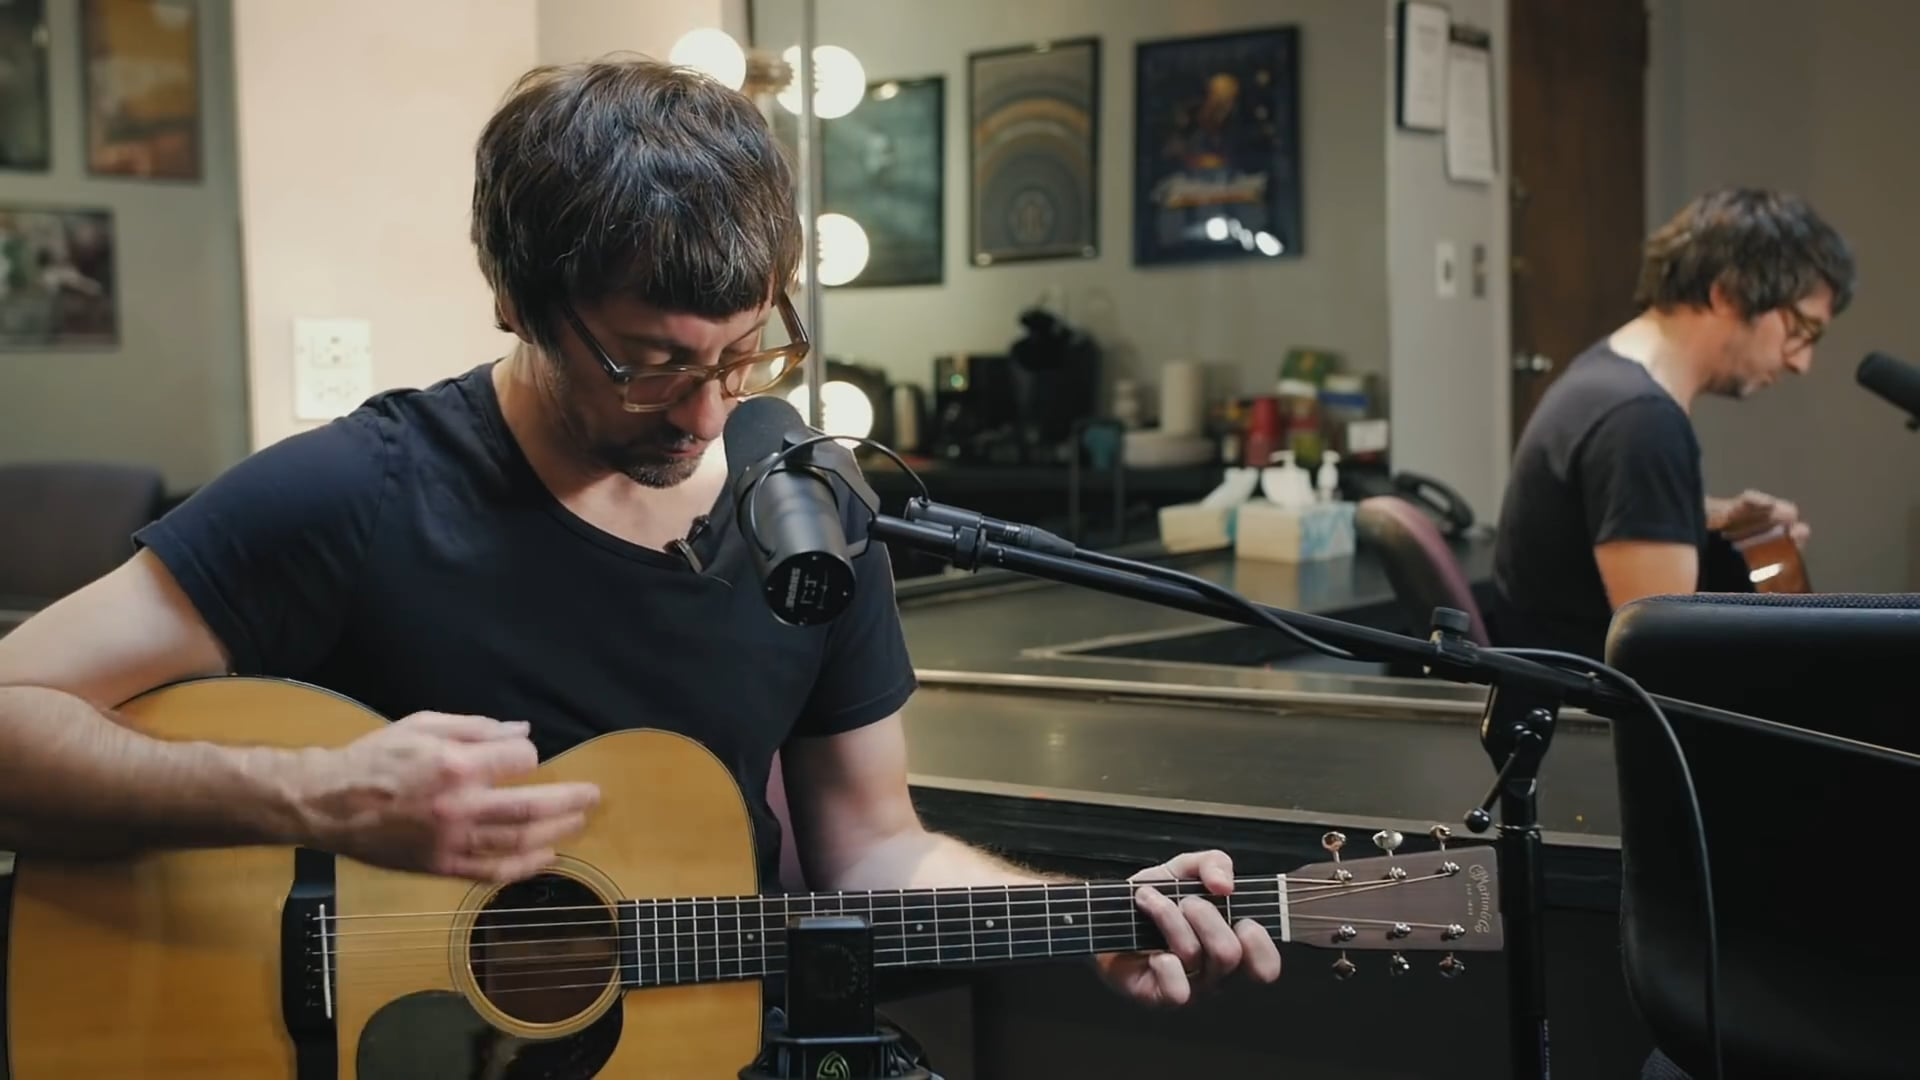 Graham Coxon on Songwriting, Producing & Performing  Reverb Interview